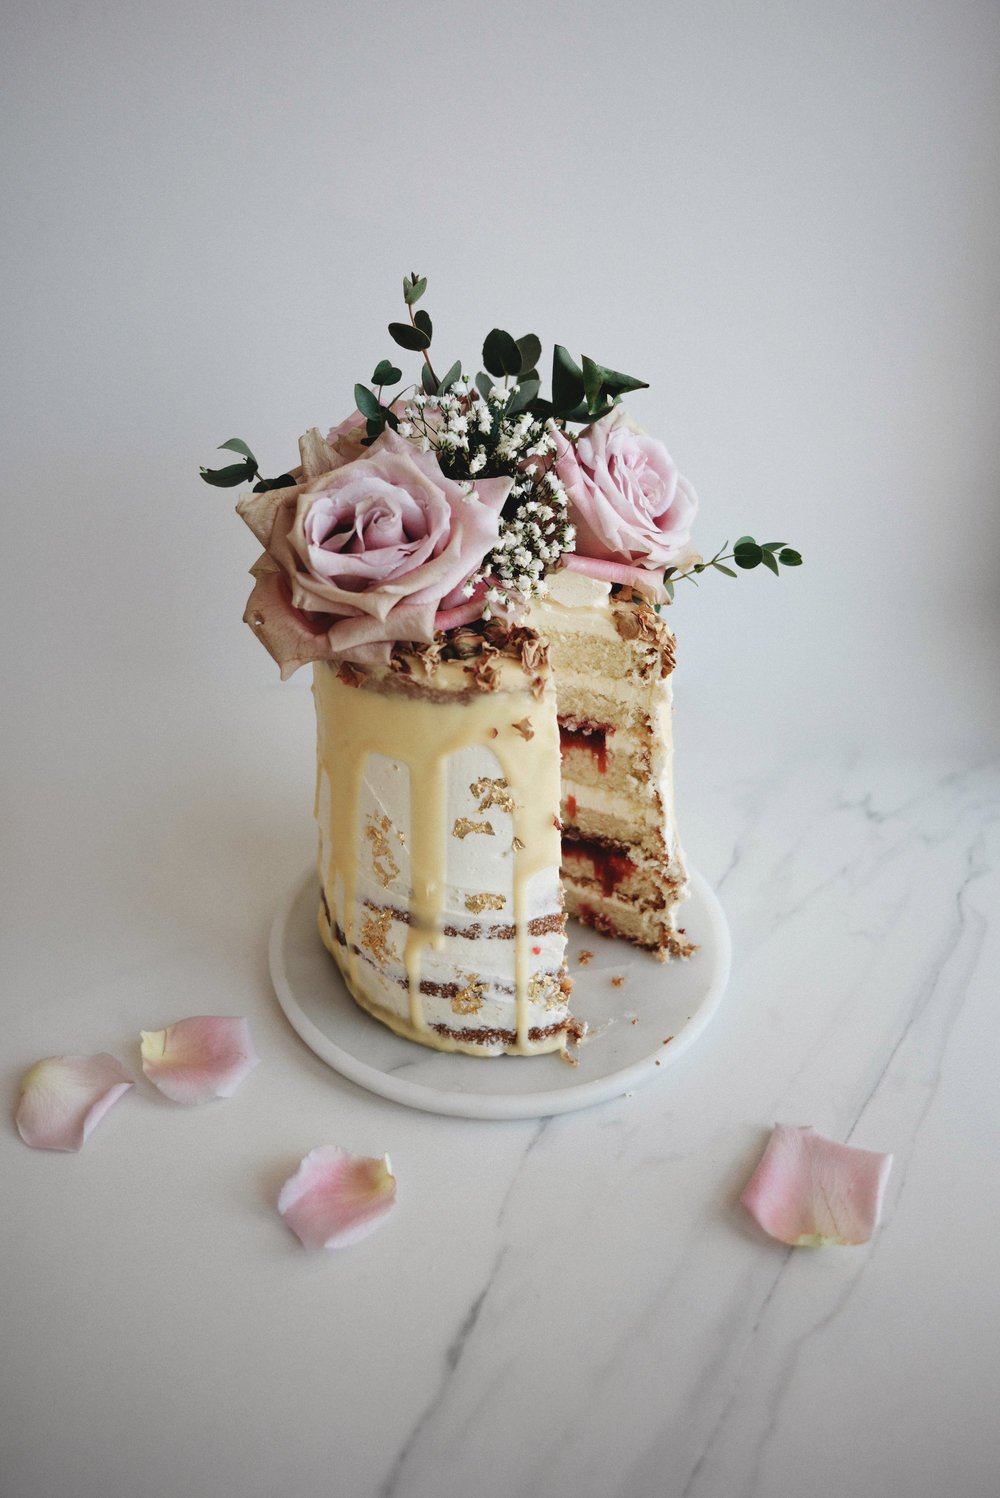 Rhubarb-and-Rose-Naked-Cake-with-Coconut-Buttercream-1.jpg